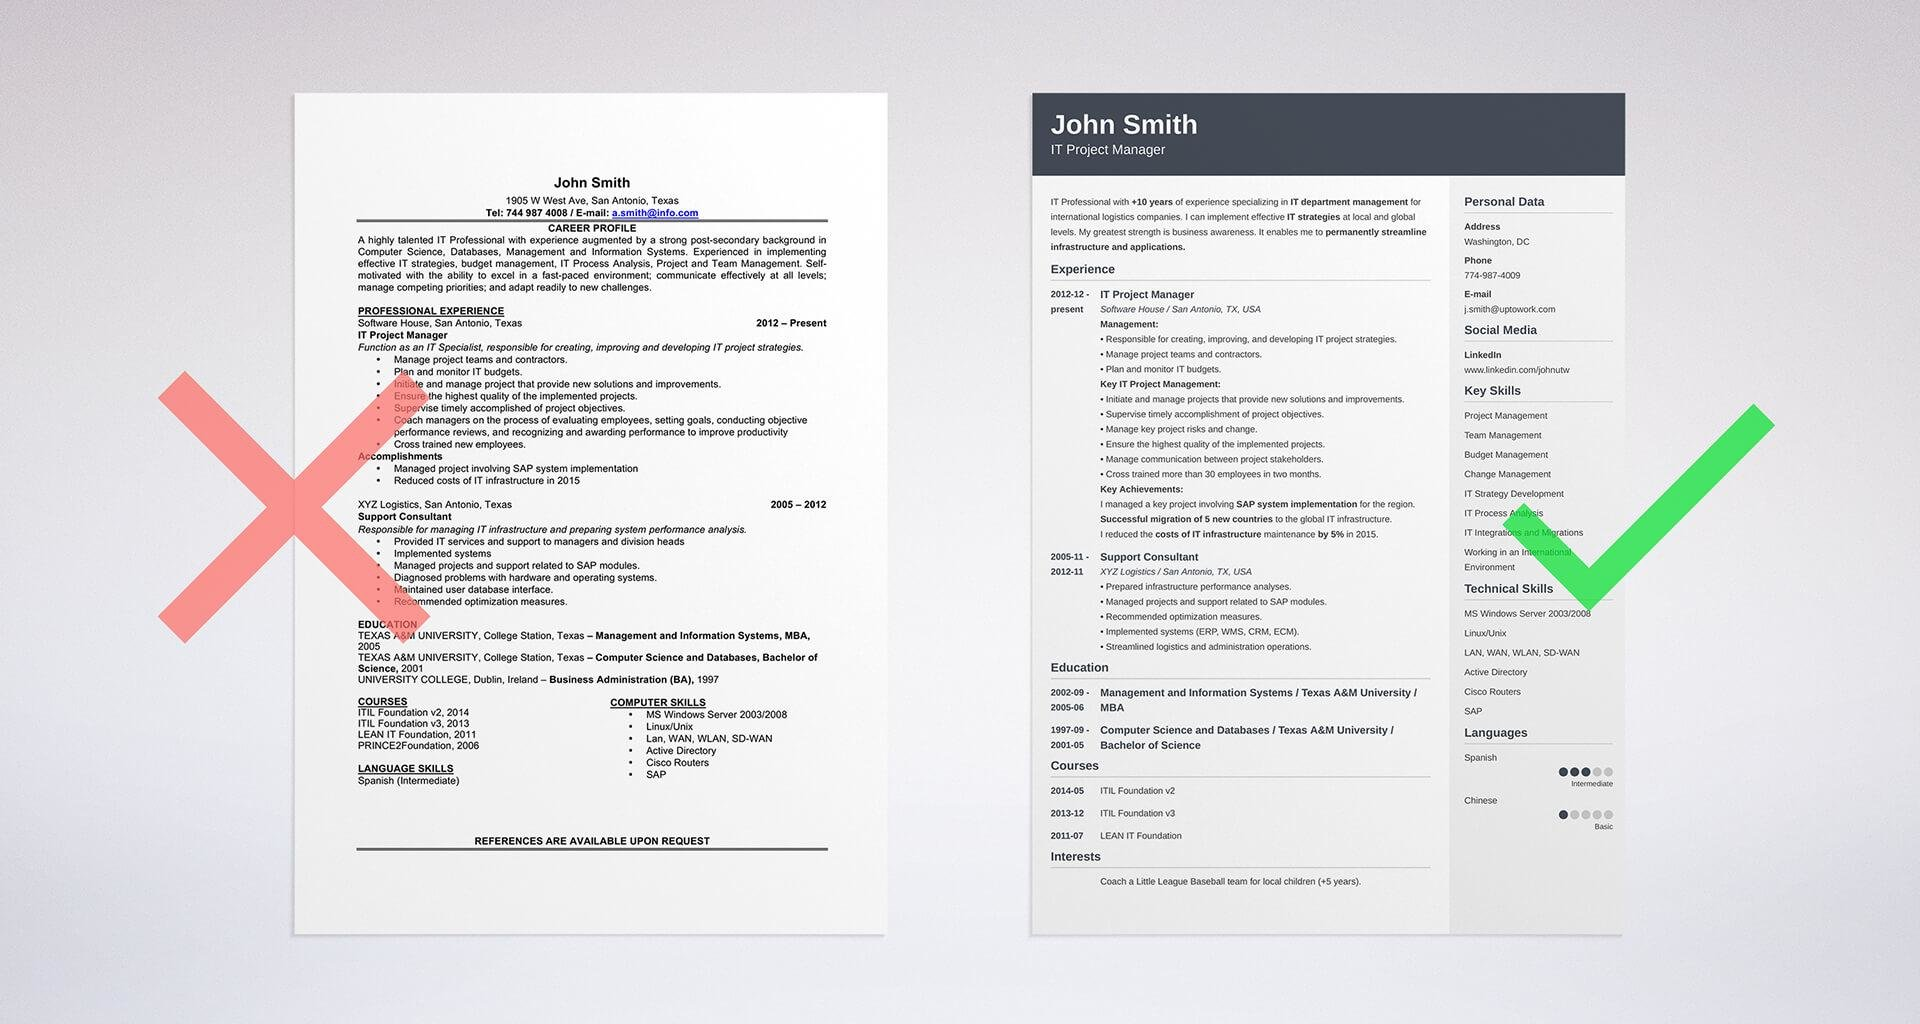 resume pdf or word best format to submit create vs tongue and quill template german Resume Create A Resume Pdf